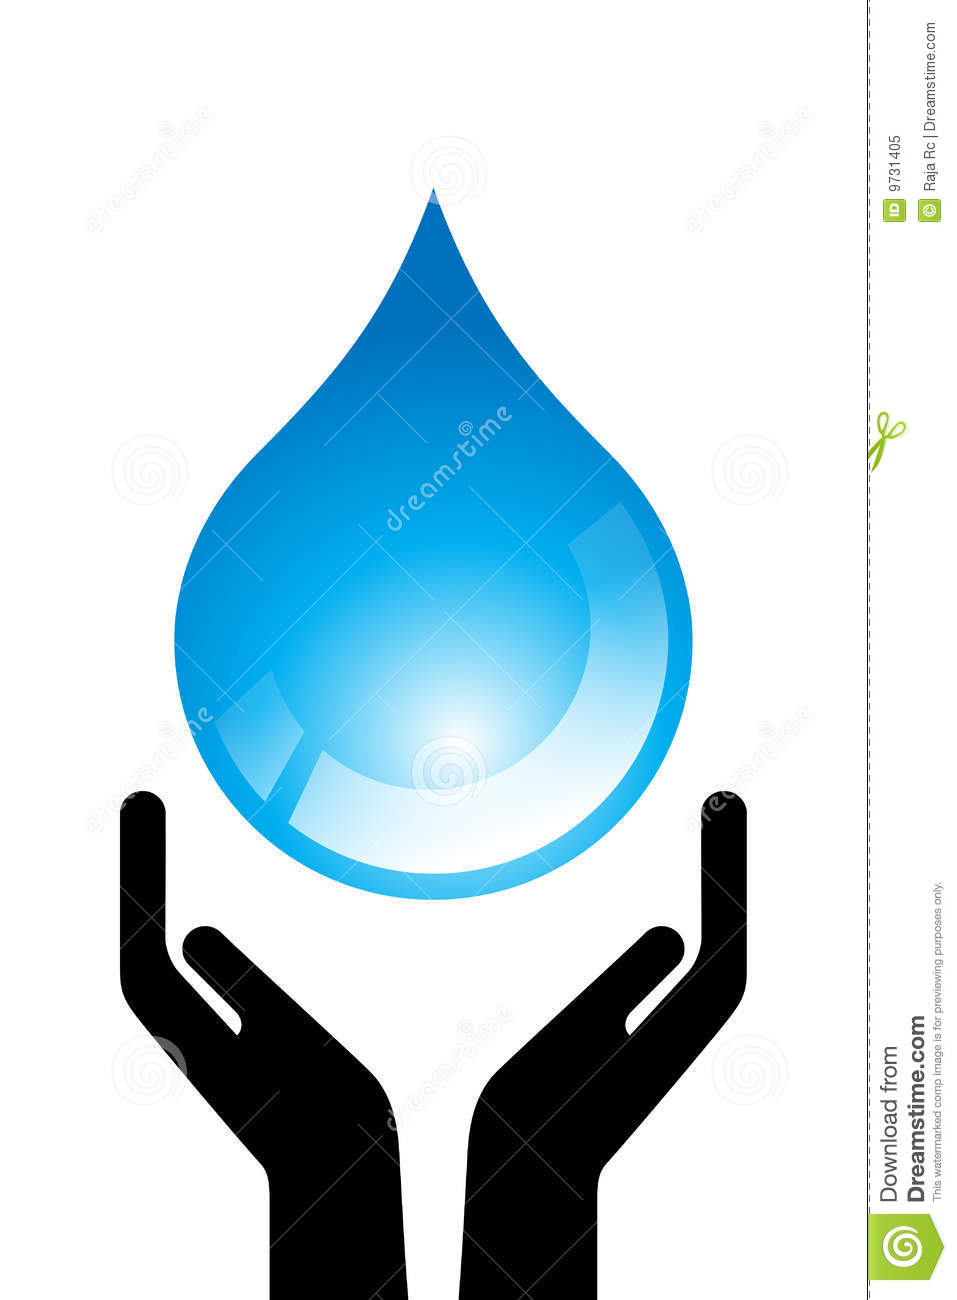 Water drop in open hand on white background - save water concept.